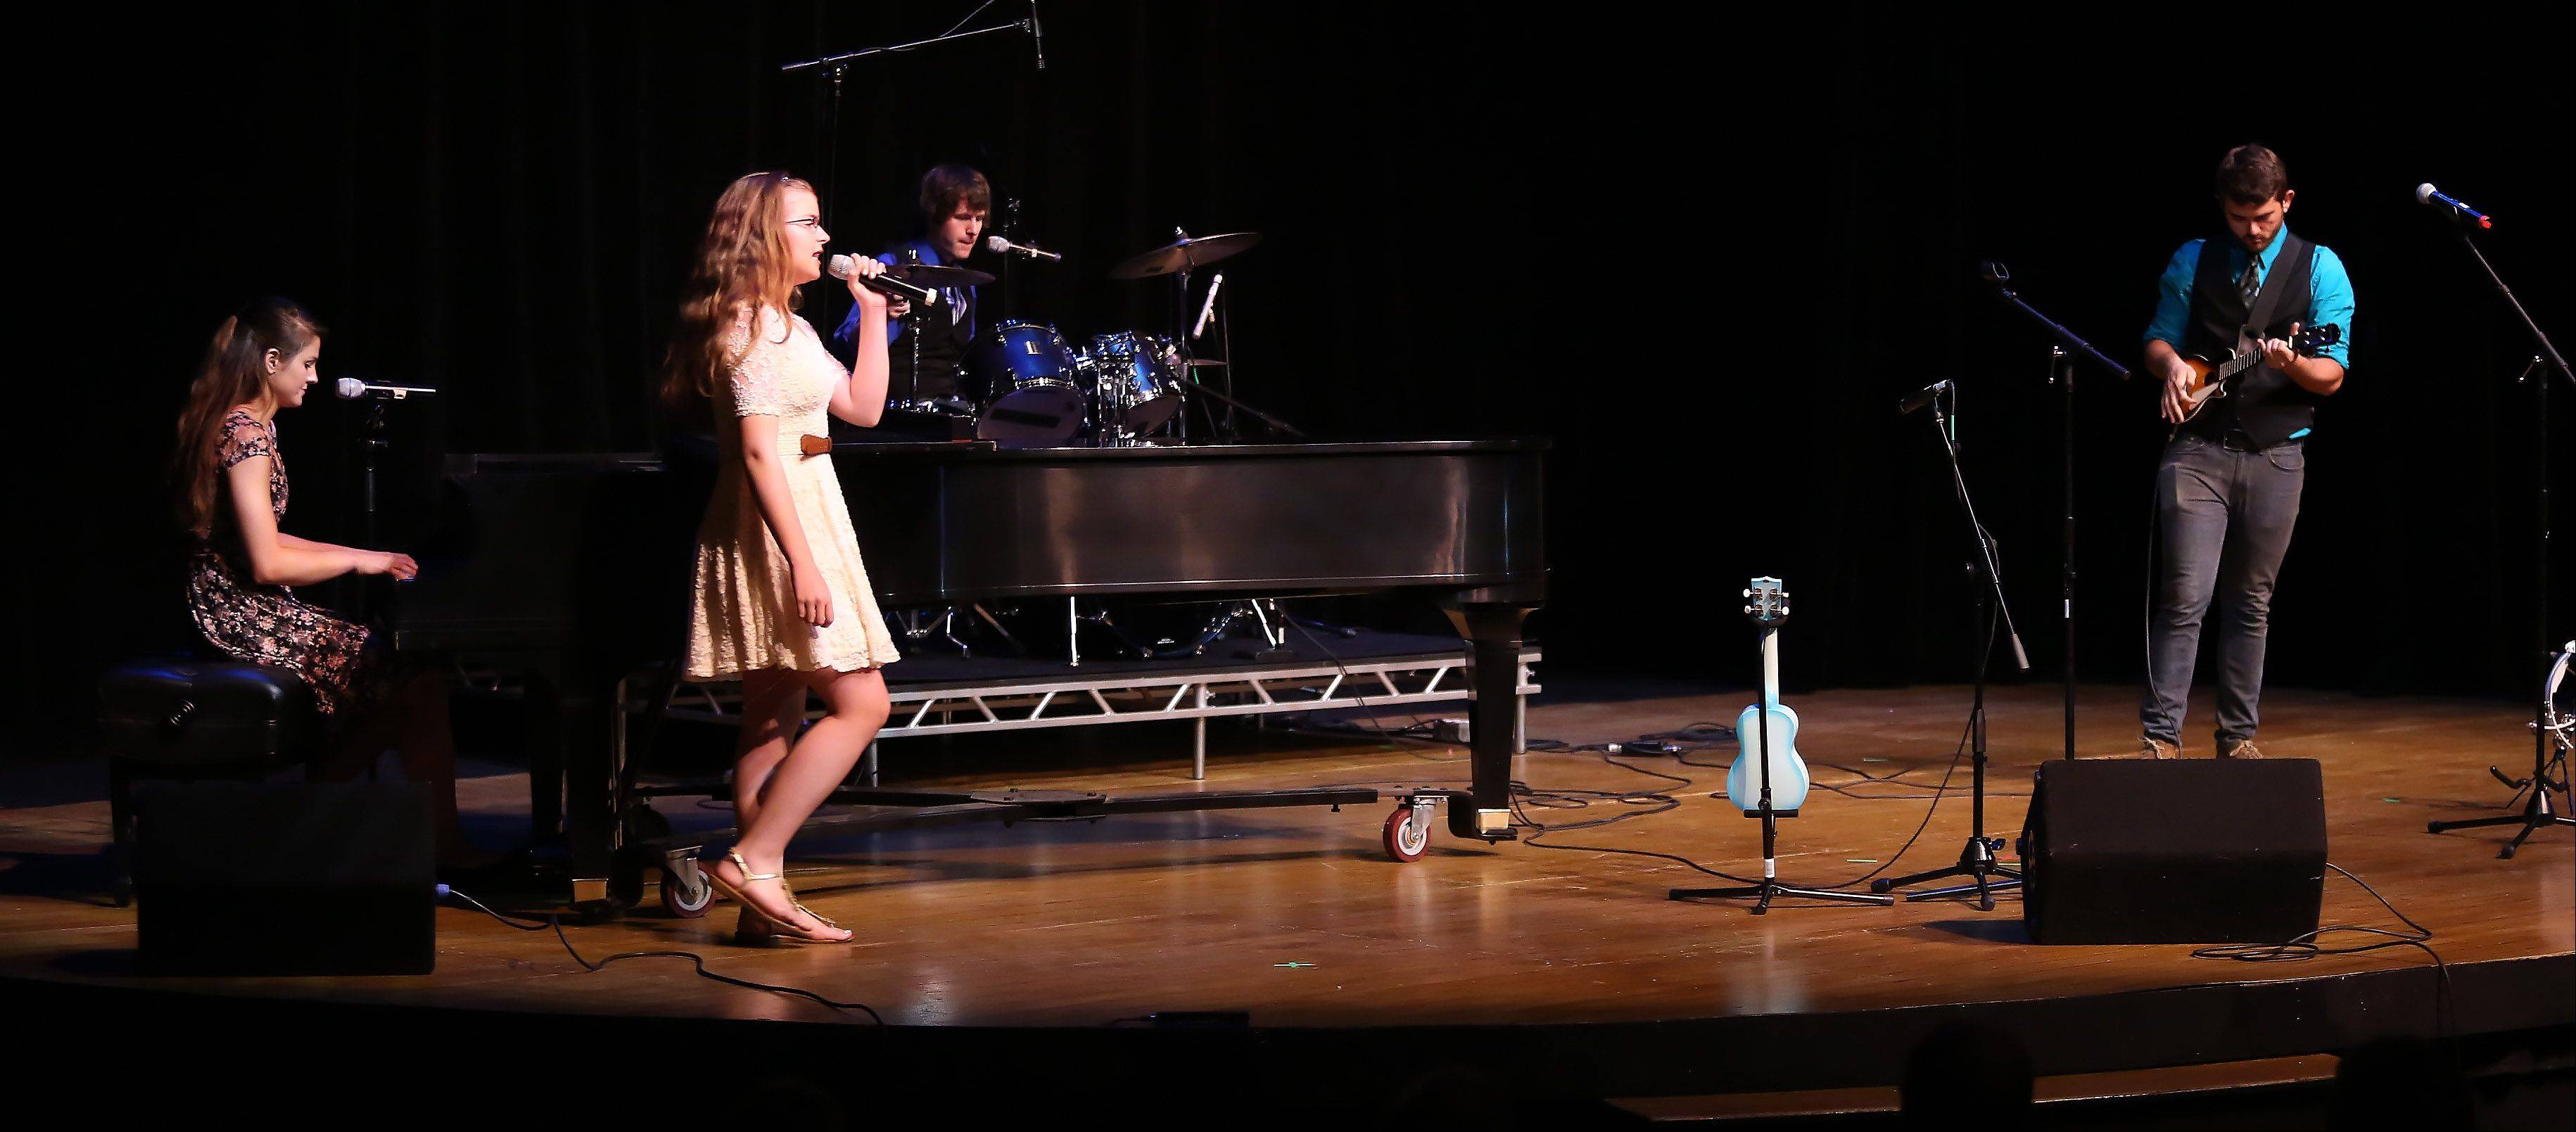 The band No Immunity of Arlington Heights performs during Suburban Chicago's Got Talent competition Sunday night at the Metropolis Performing Arts Centre in Arlington Heights. The summer long talent contest is presented by the Daily Herald and sponsored by the Arlington Heights Chamber of Commerce.